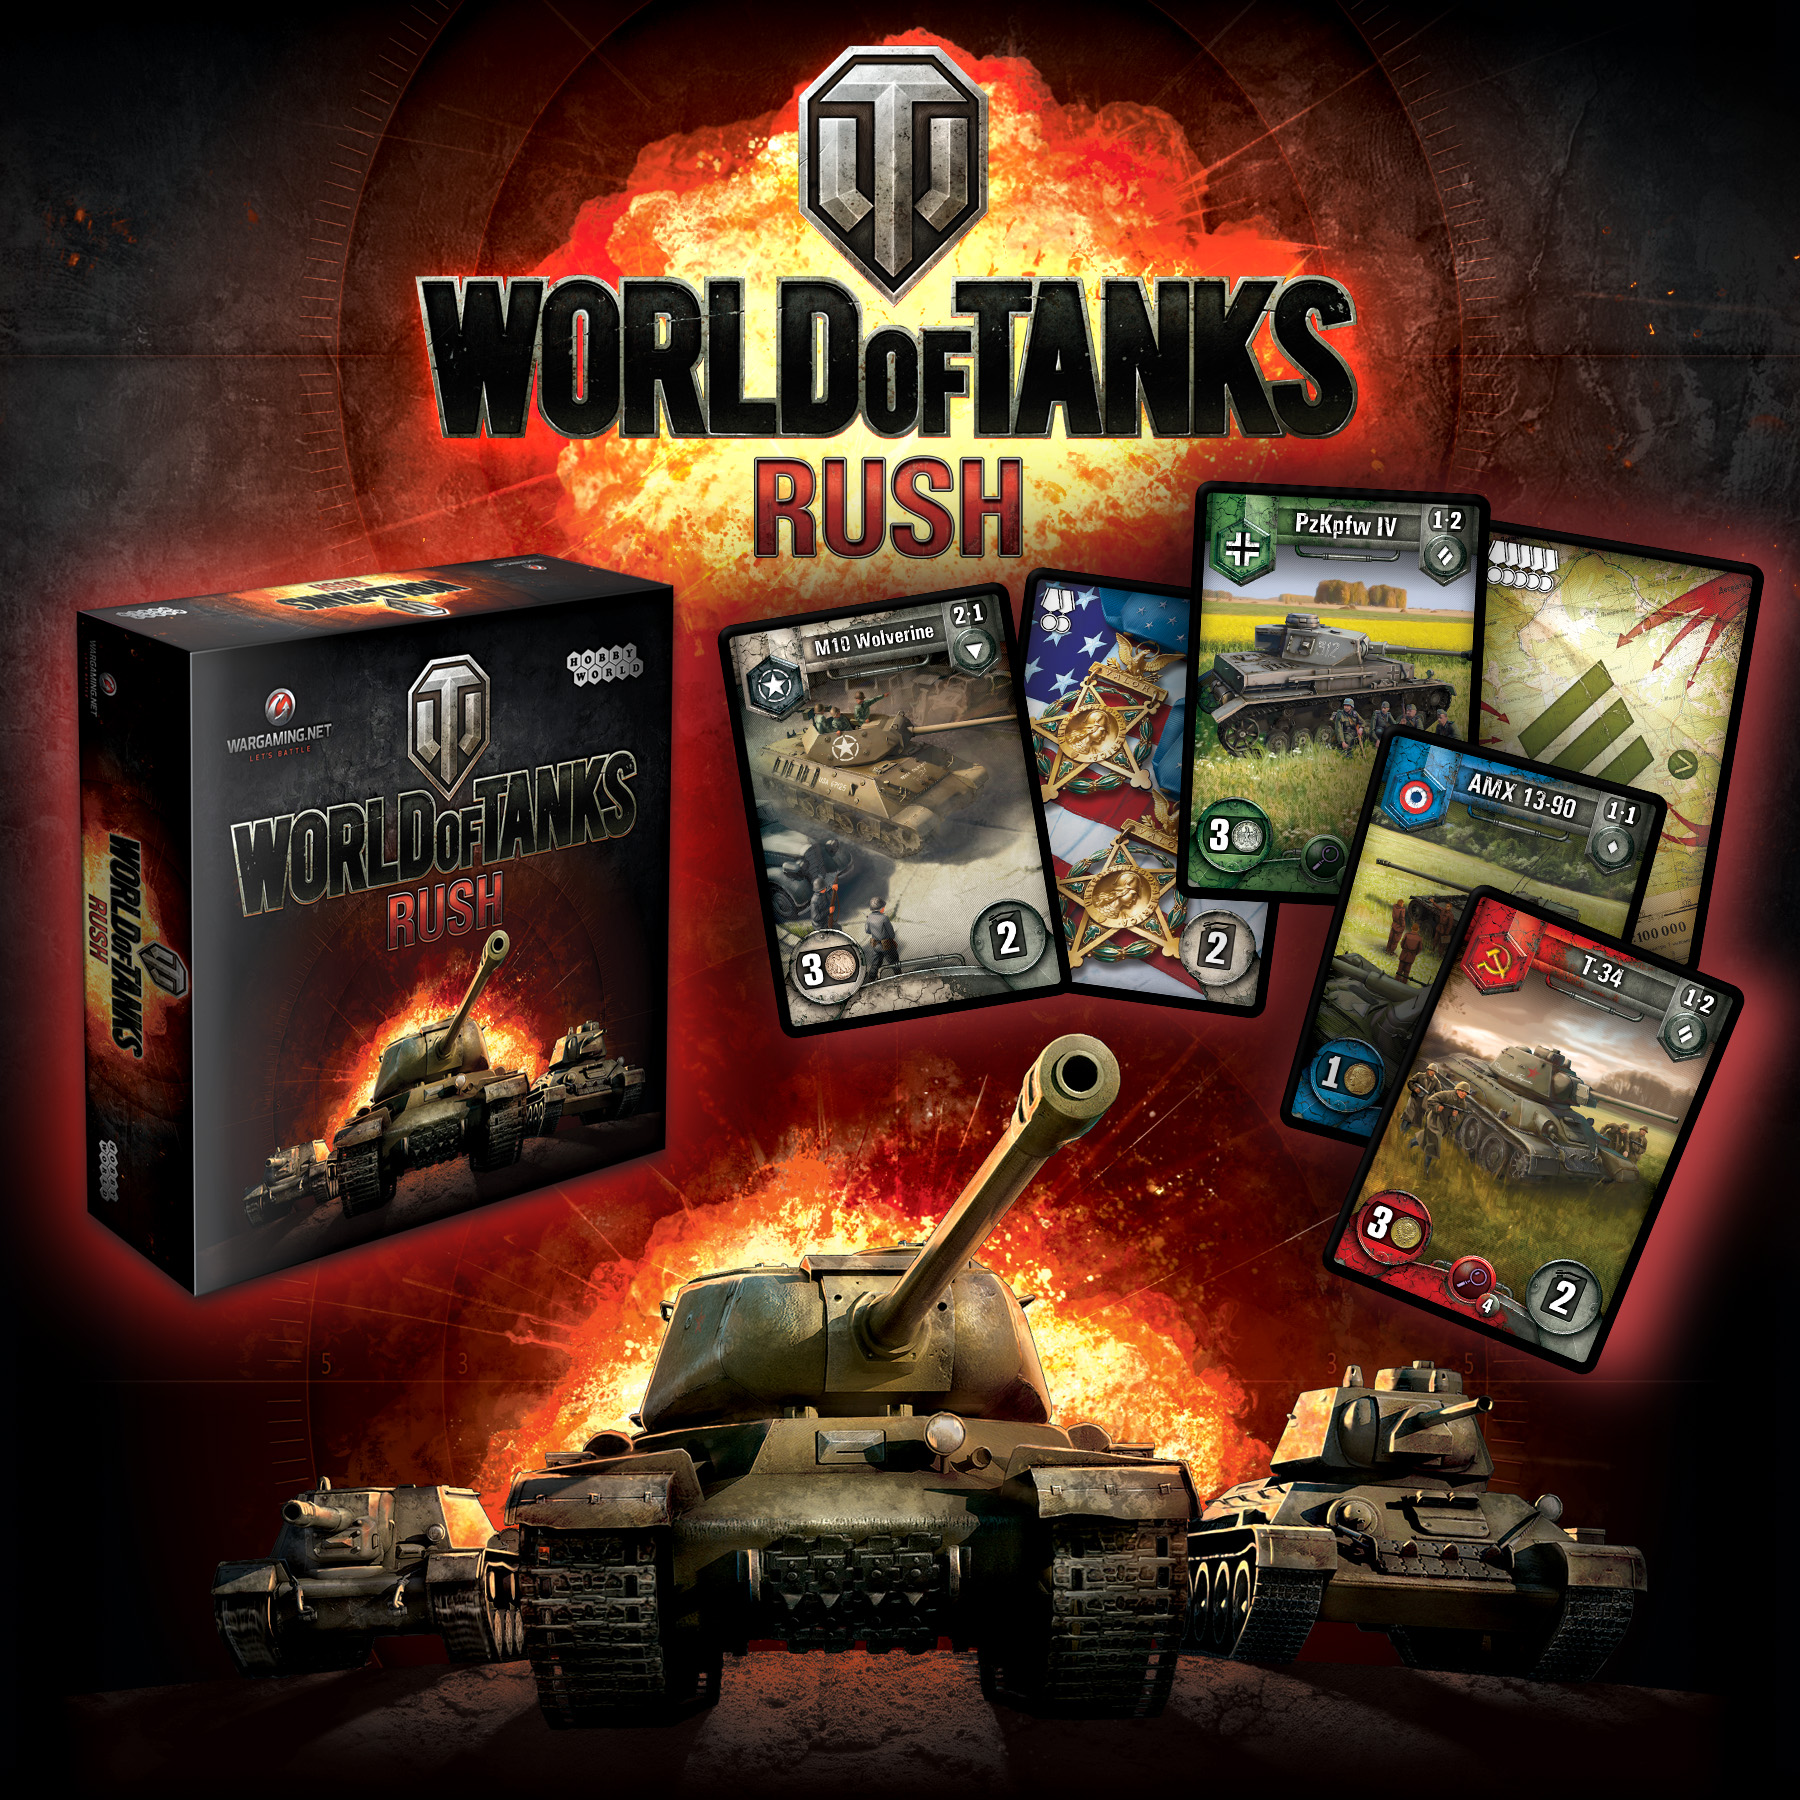 World of Tanks Rush - Off-Topic - World of Tanks official forum